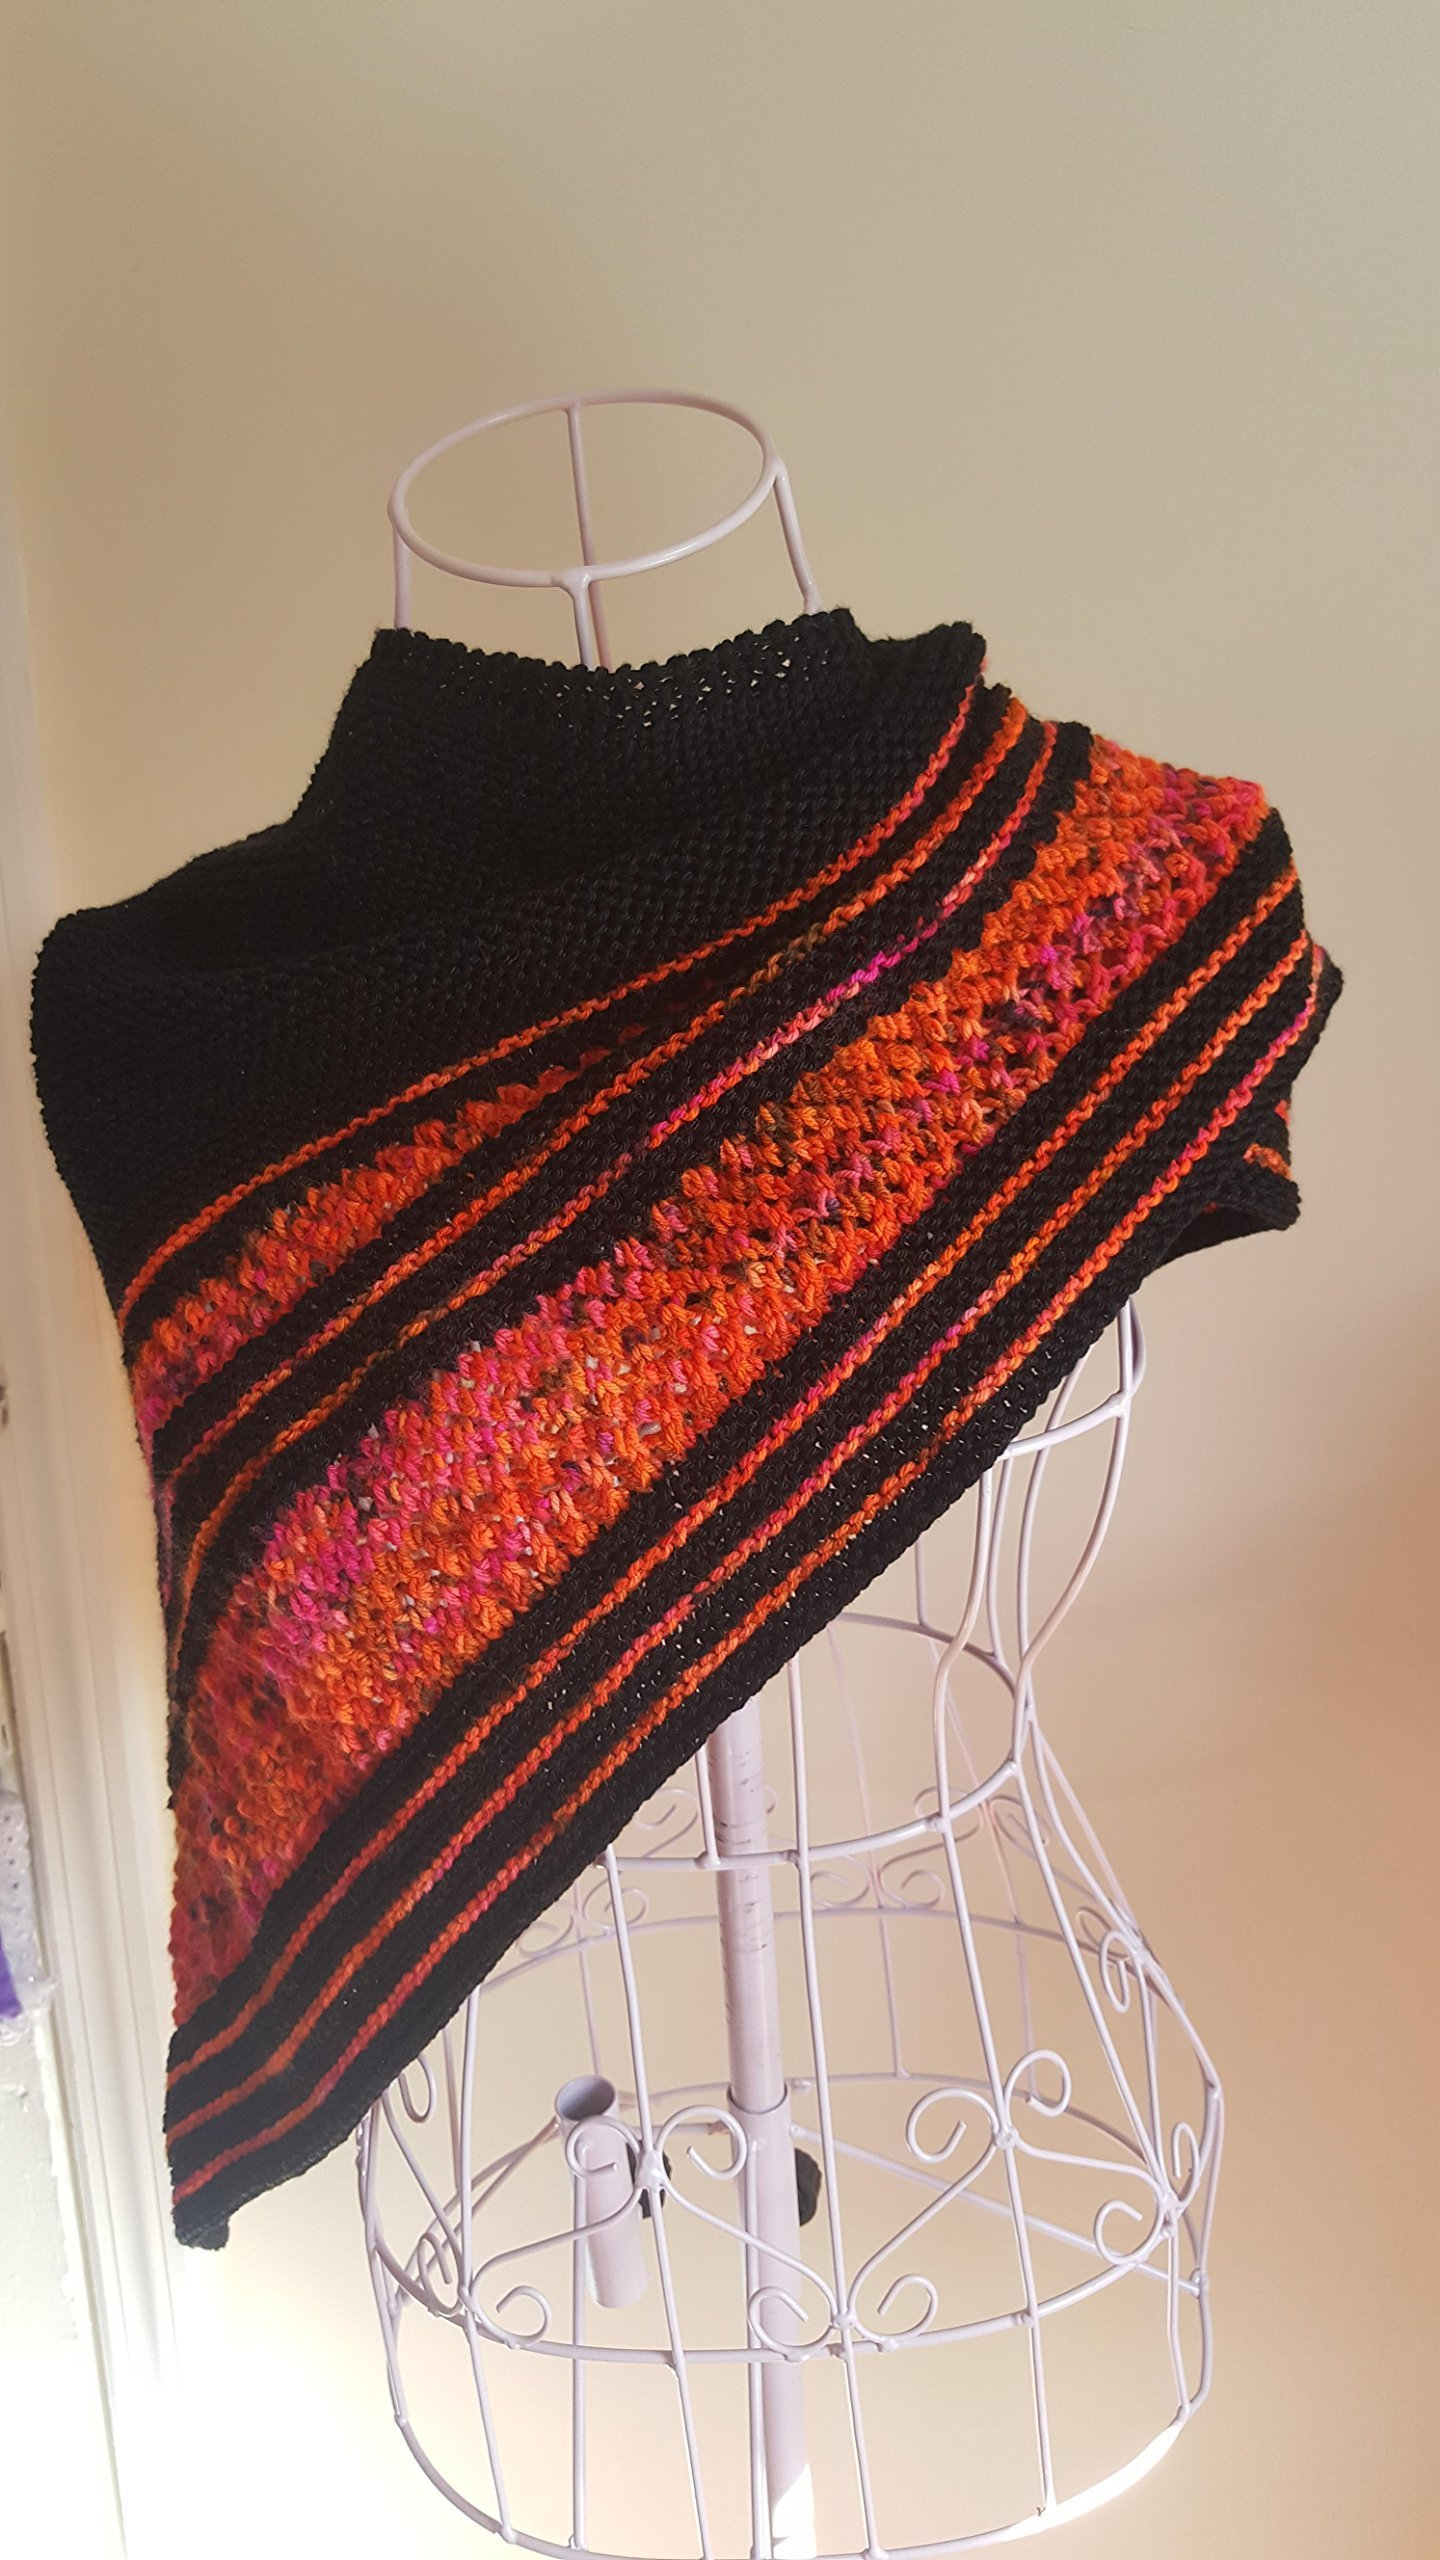 Hand Knit Cashmere, Merino Wool and Pima Cotton Shawl made from Hand Dyed Yarn - Fire Shawl Mothers Day Gift